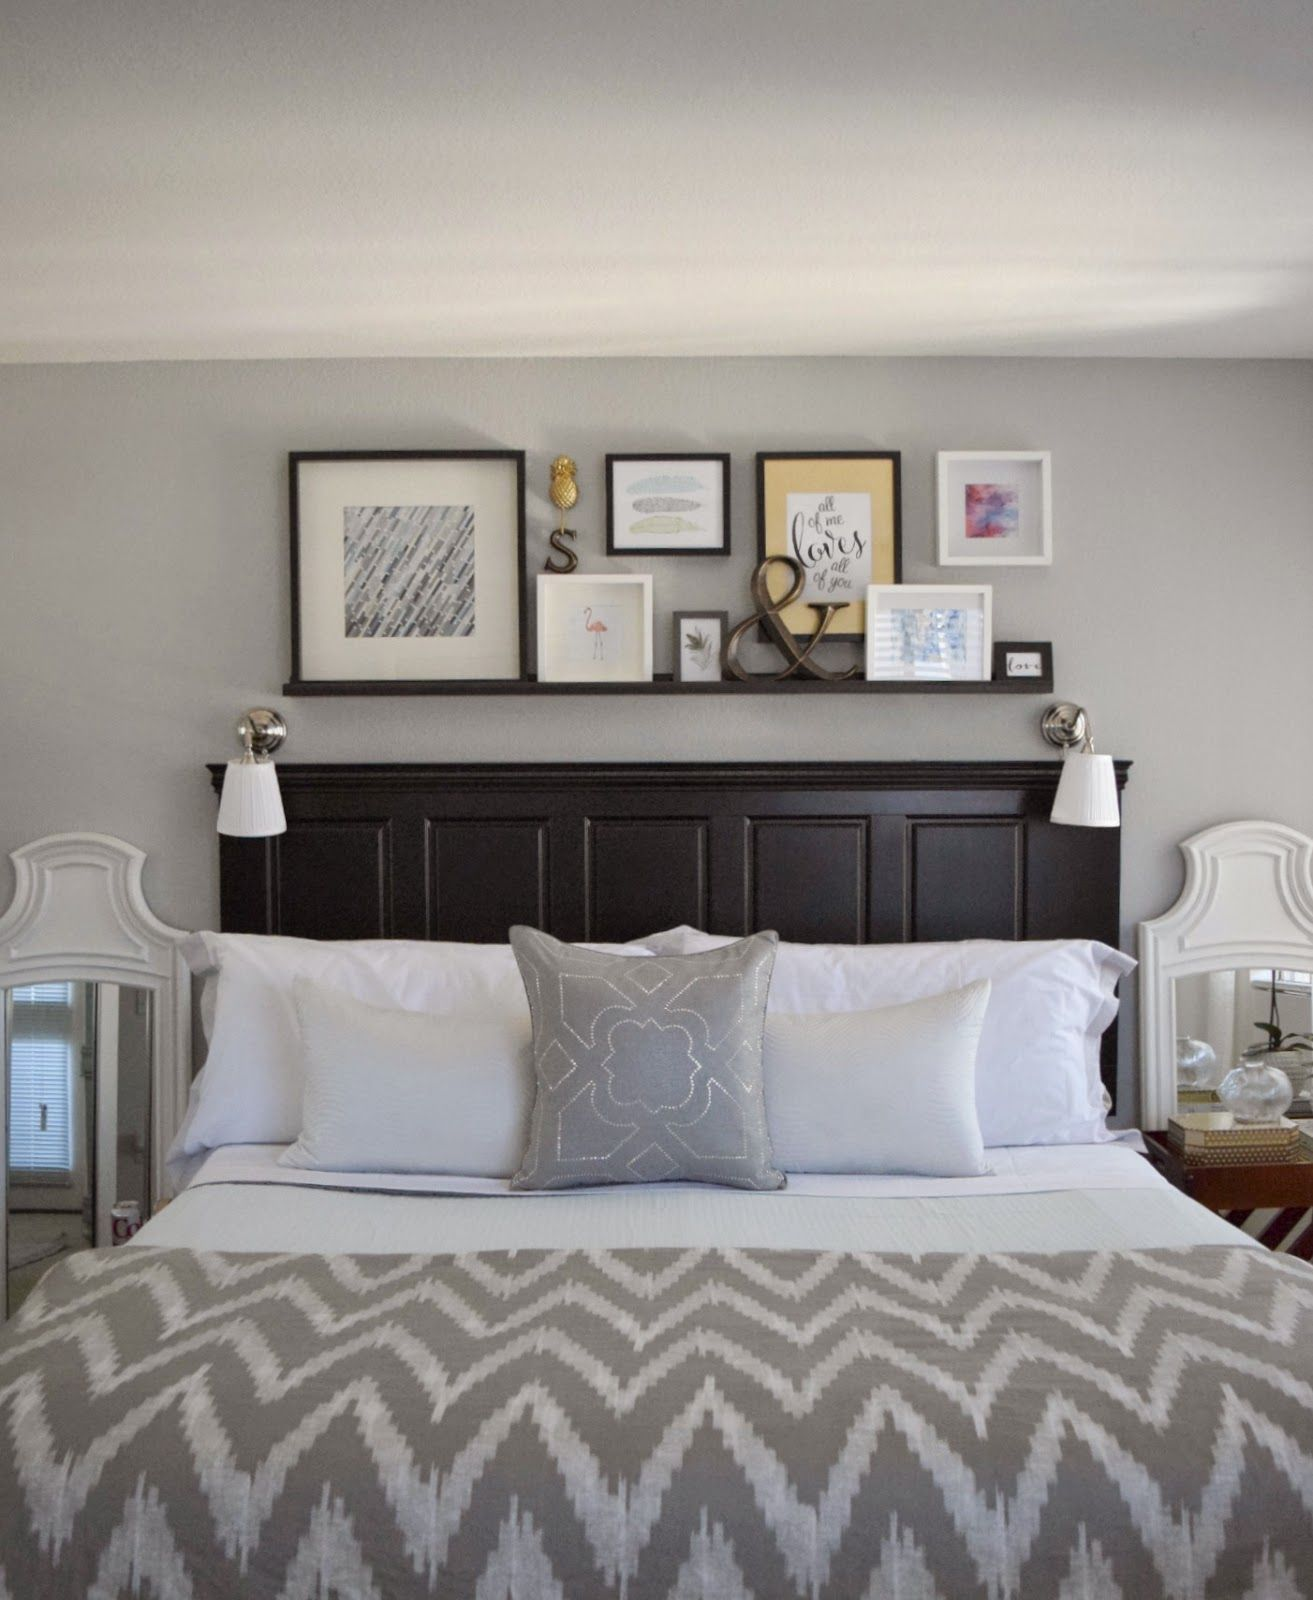 Bedroom Wall Shelves Decorating Ideas How To Make Your Bed Like The Hotels Do Decorating